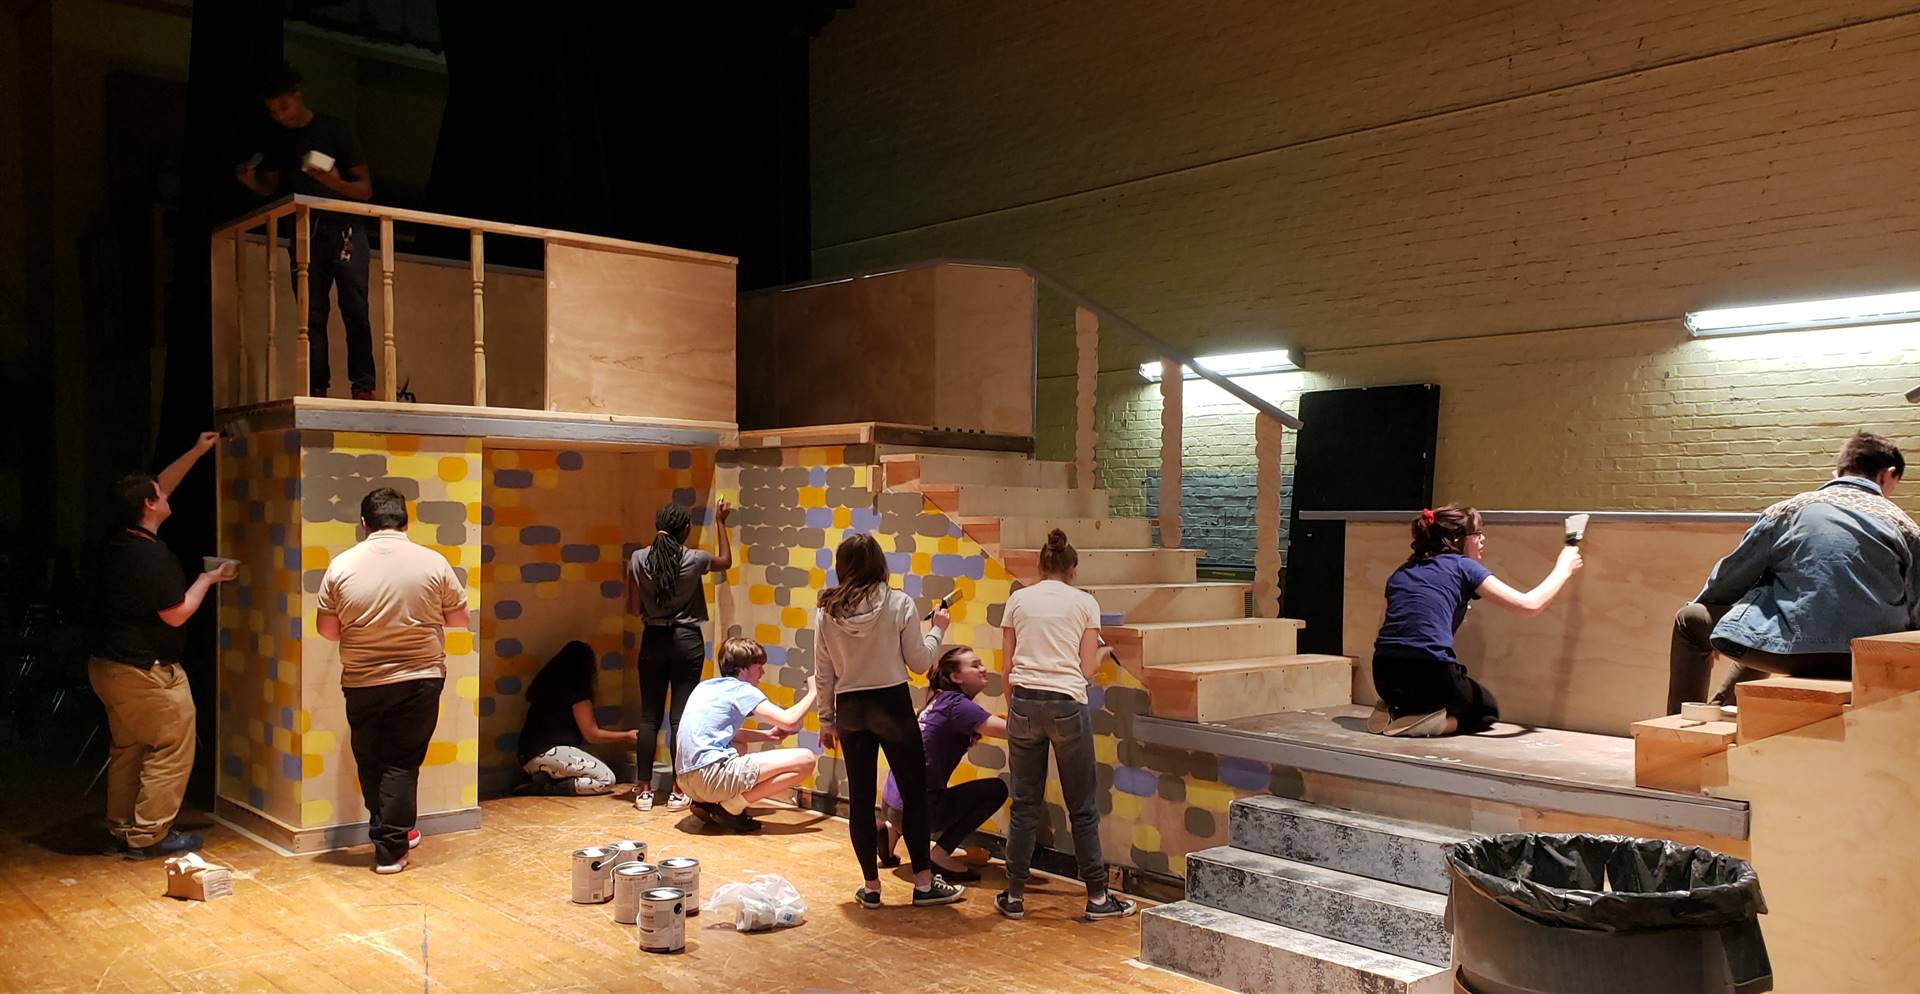 Theatre Arts & Visual Arts Students Collaborating on Set Painting